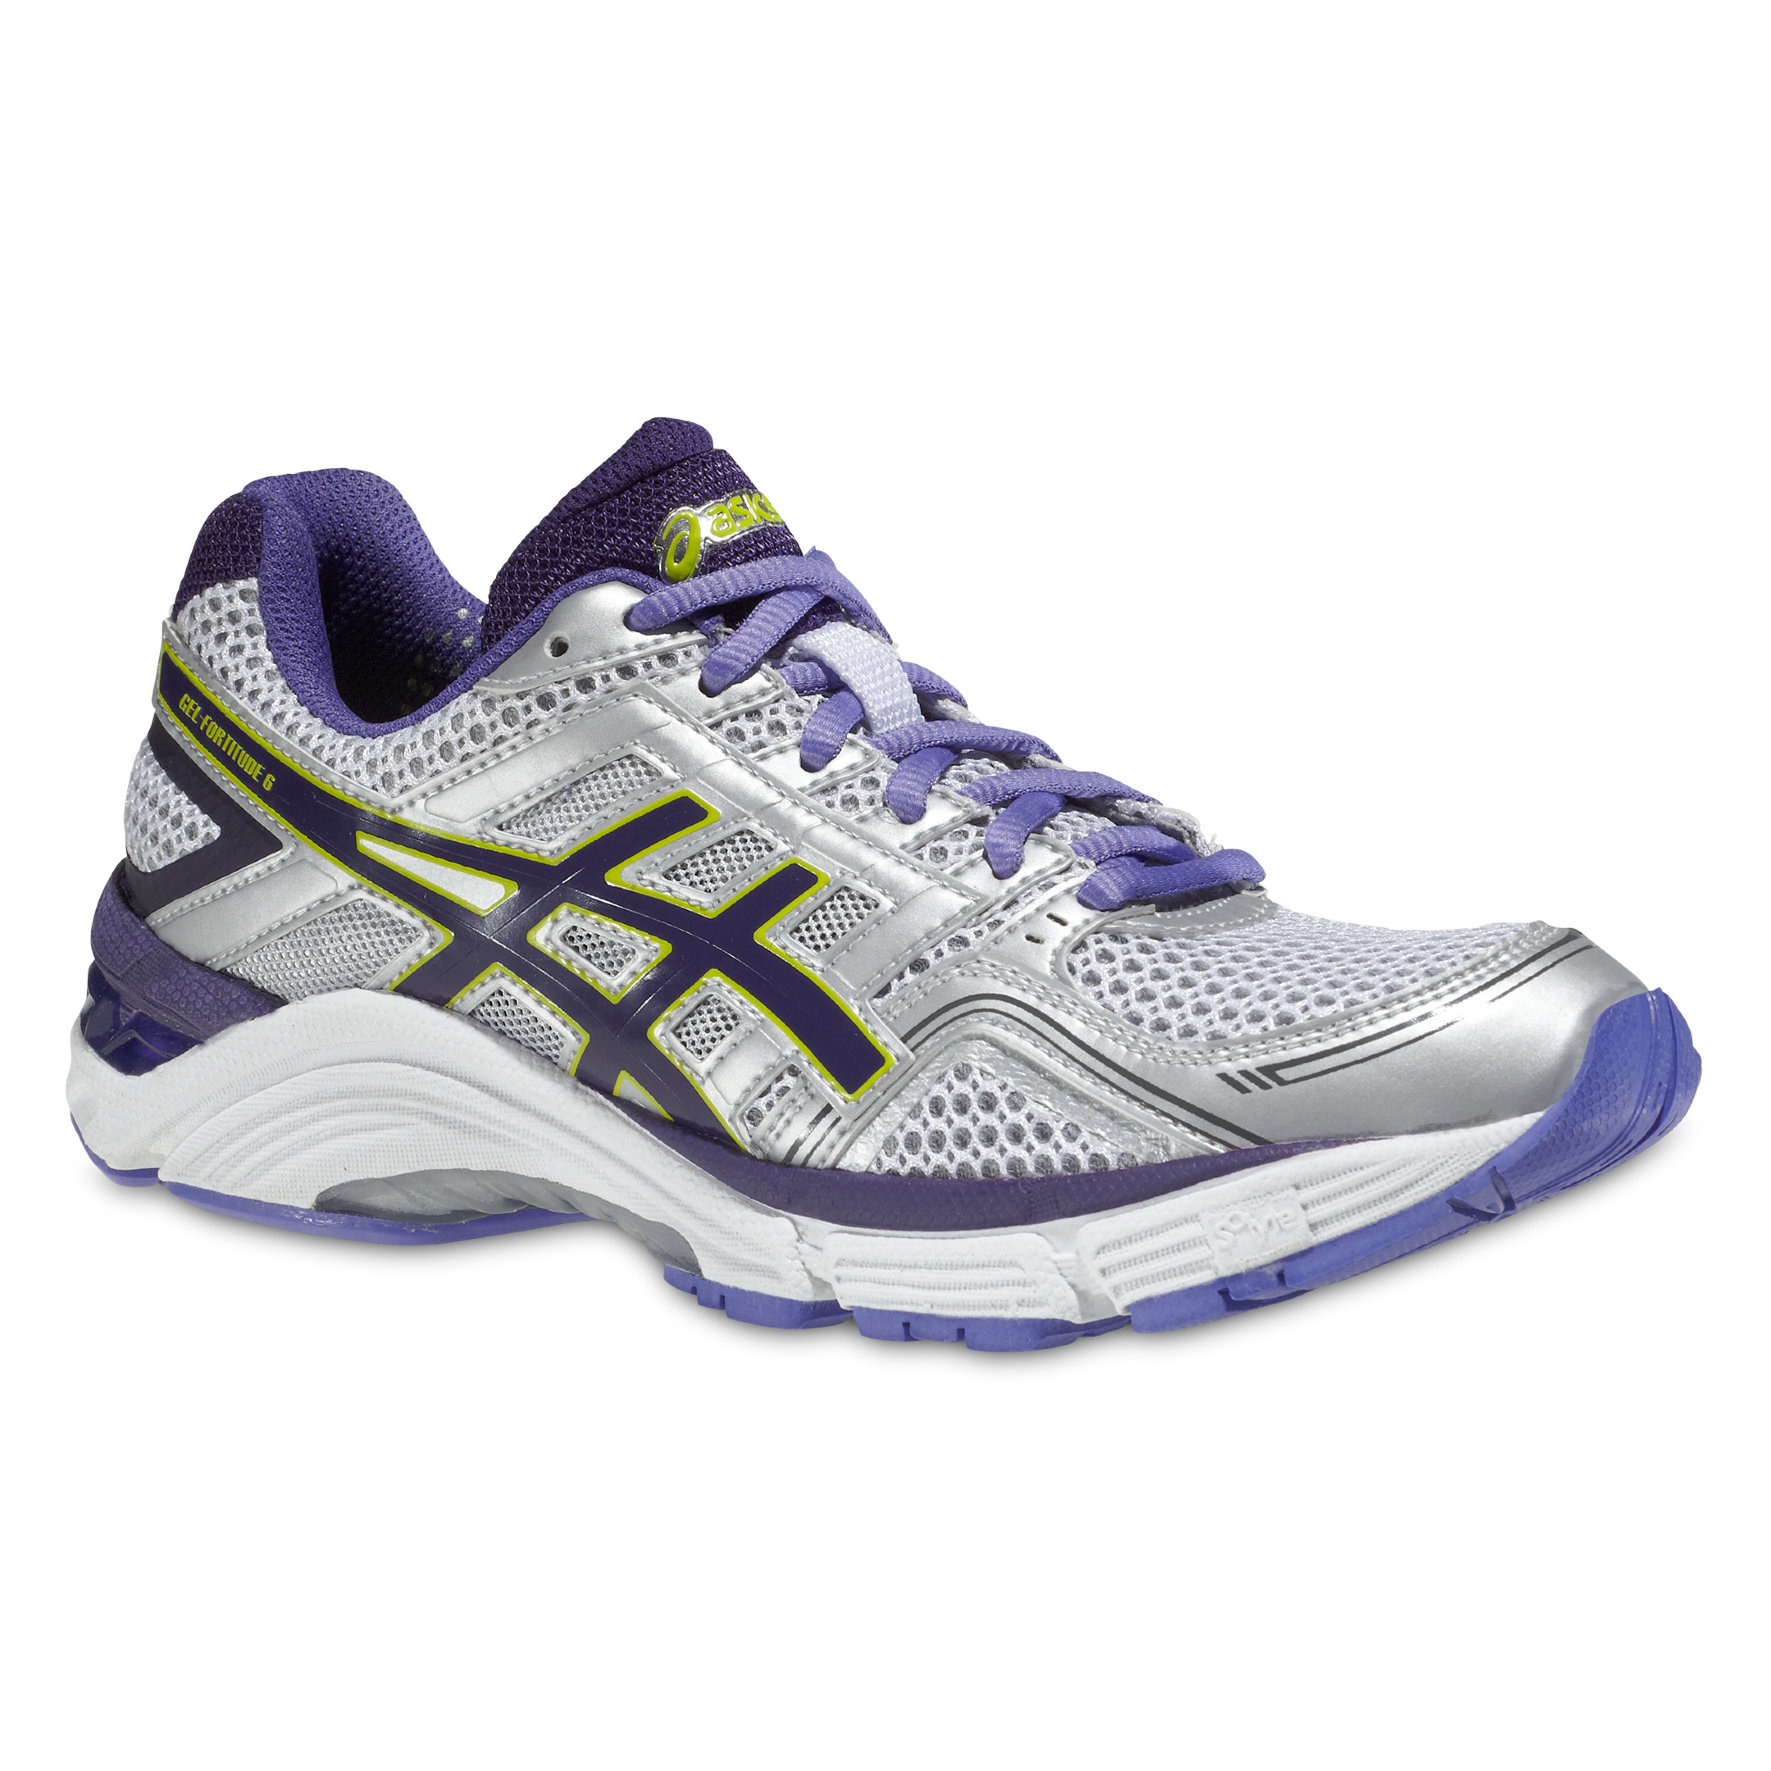 Asics Lady Gel Fortitude 6 in Weiß, Violet